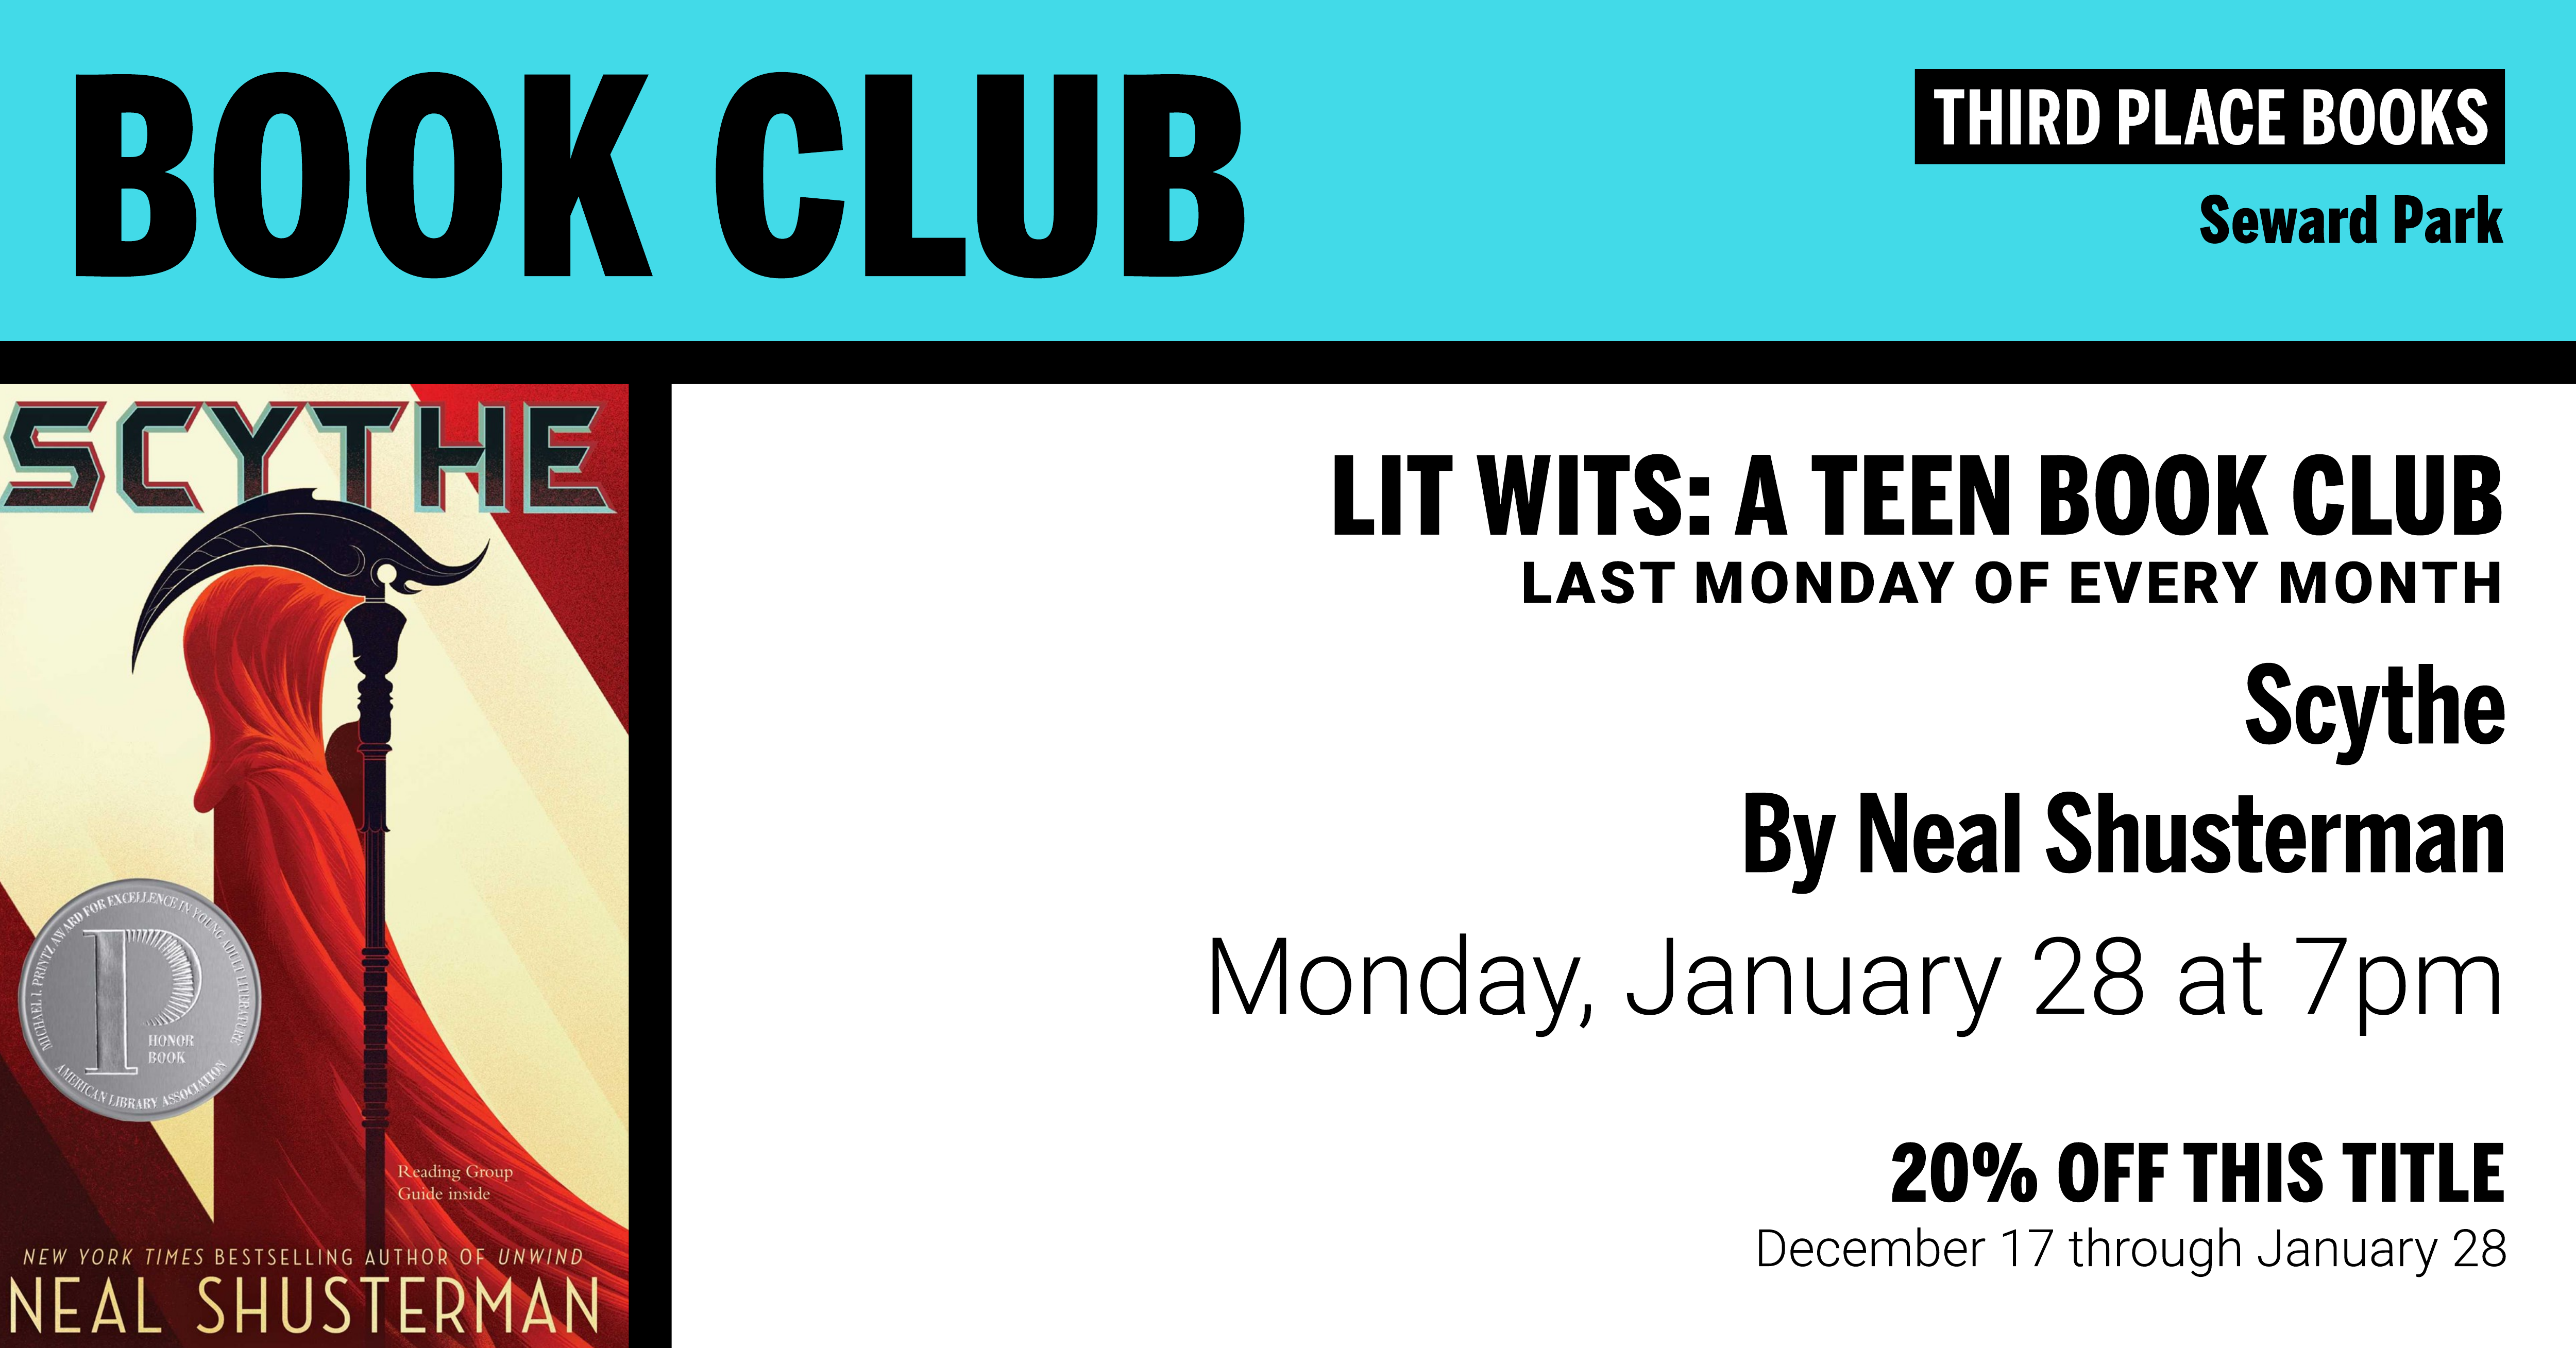 Lit Wits: A Teen Book Club discussing Scythe by Neal Shusterman on Monday, January 28 at 7pm